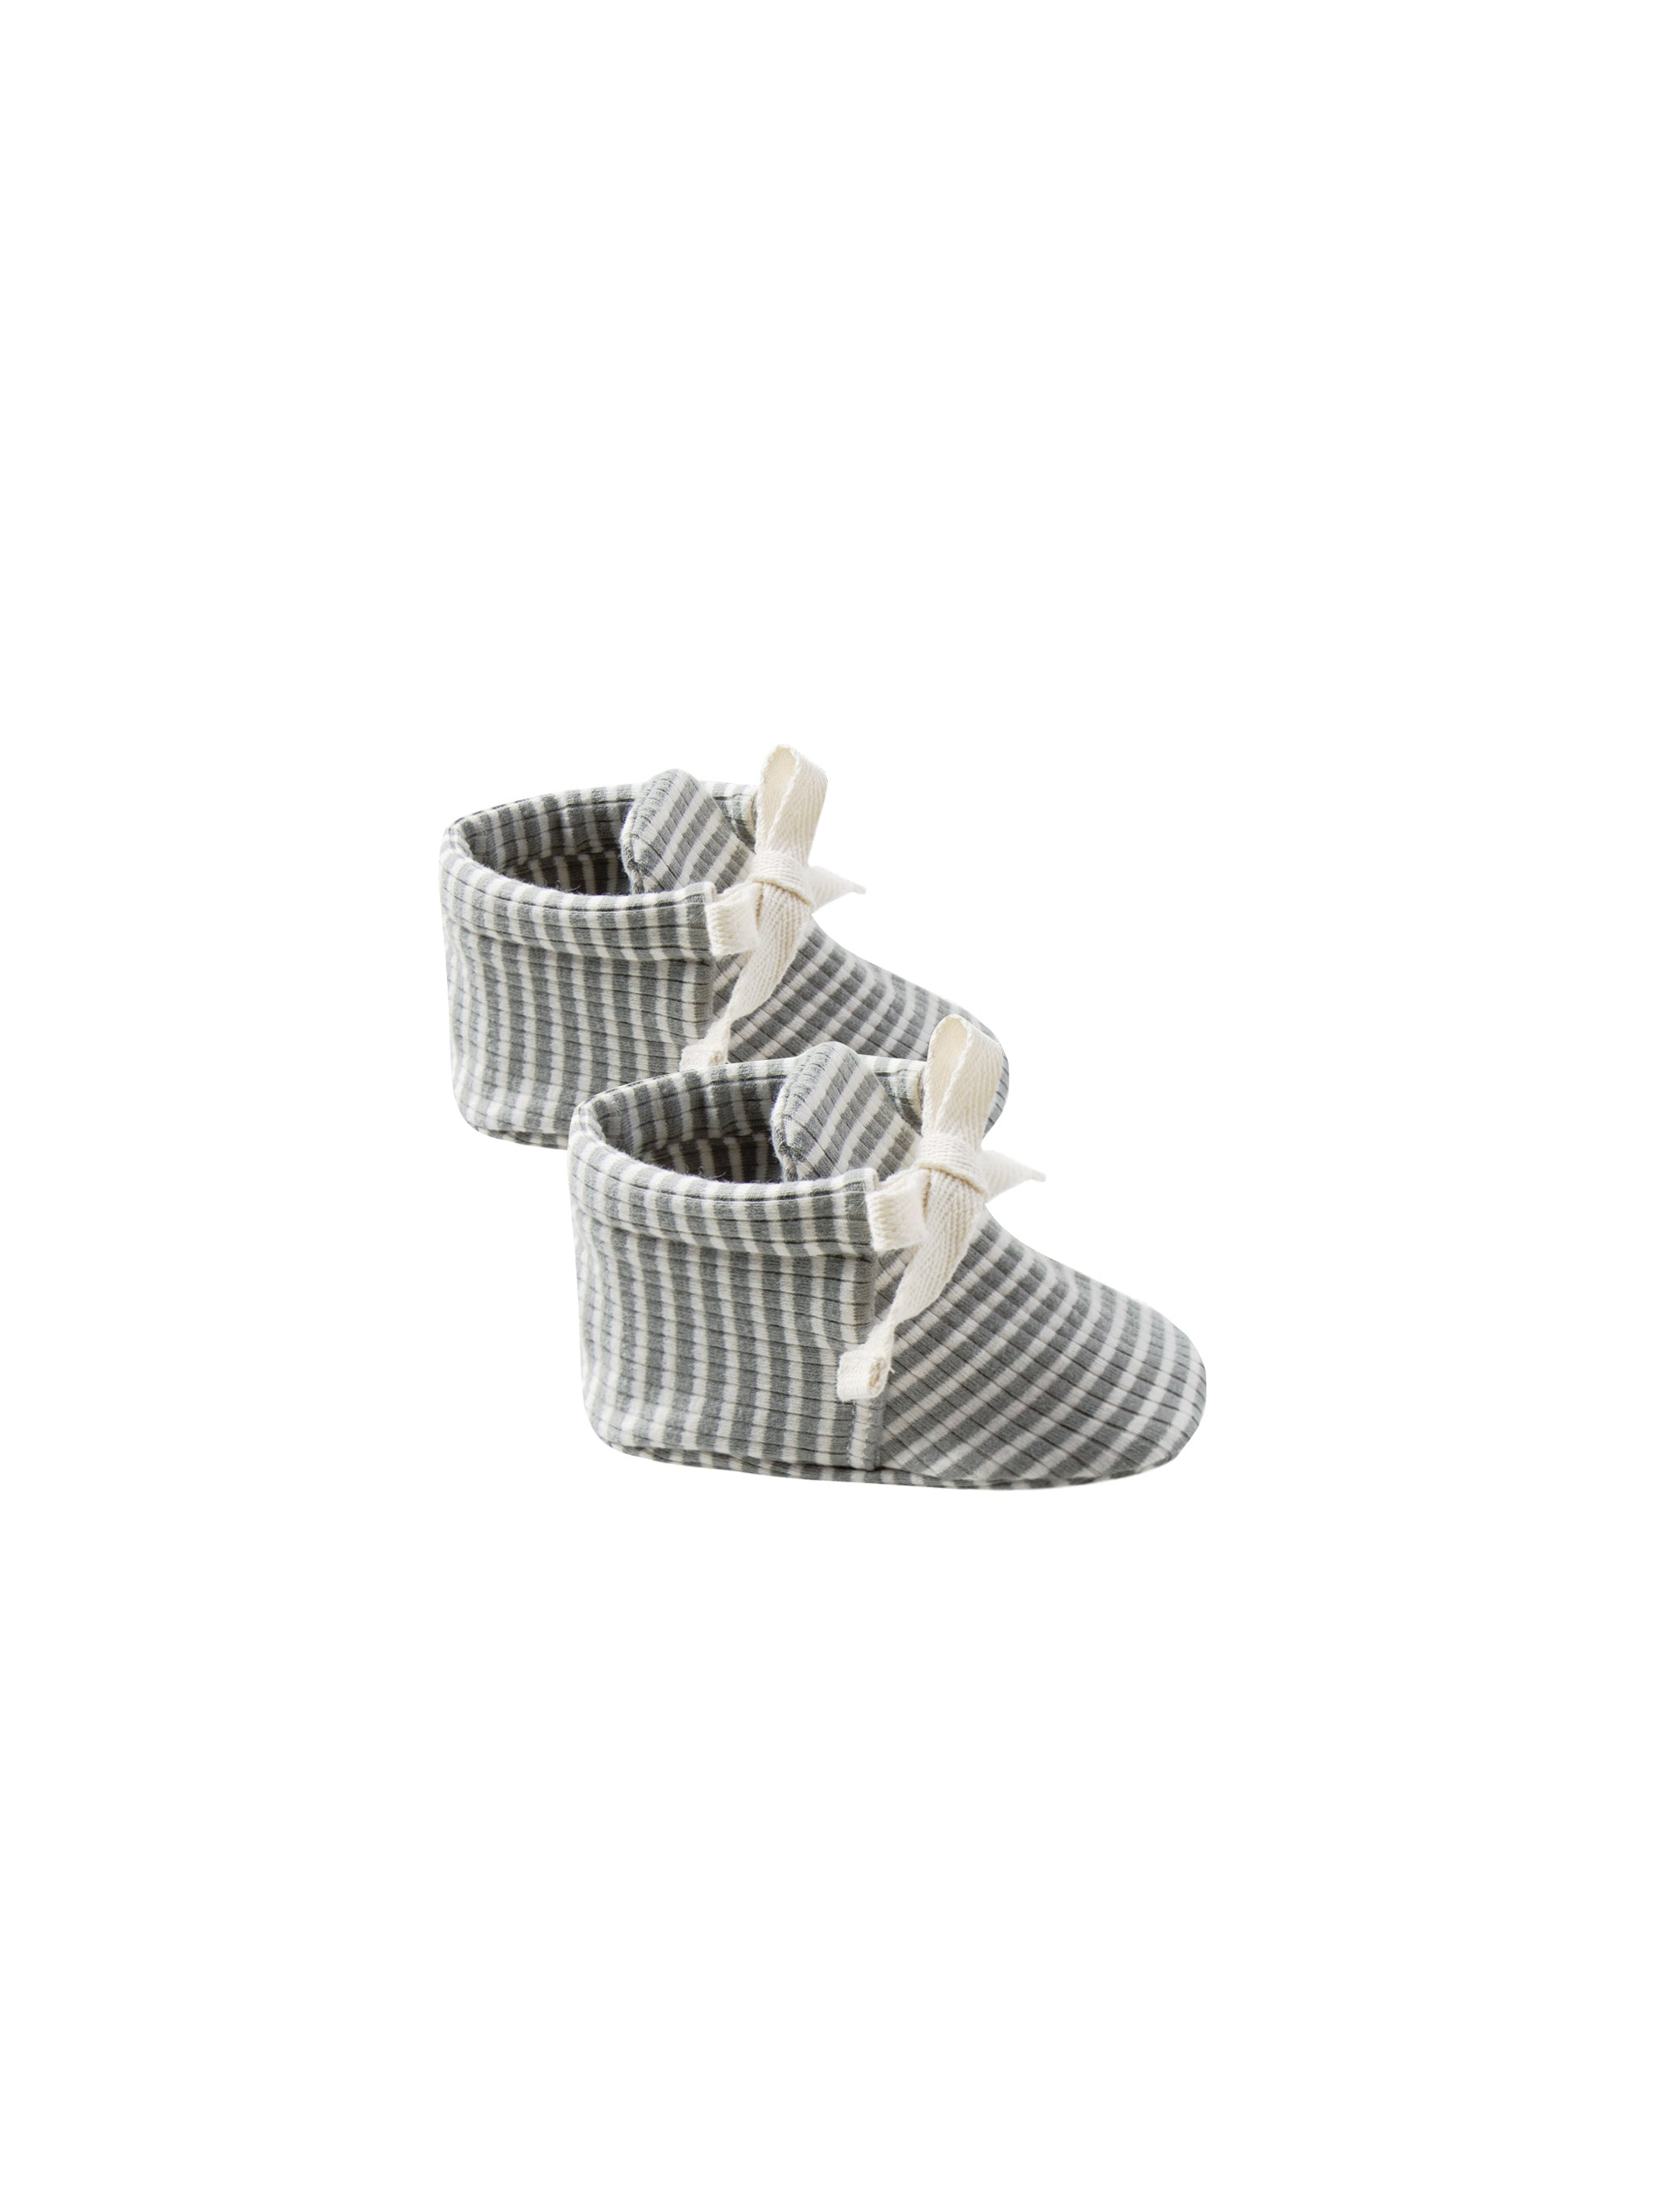 Quincy Mae - Ribbed Baby Booties (Eucalyptus Stripe)